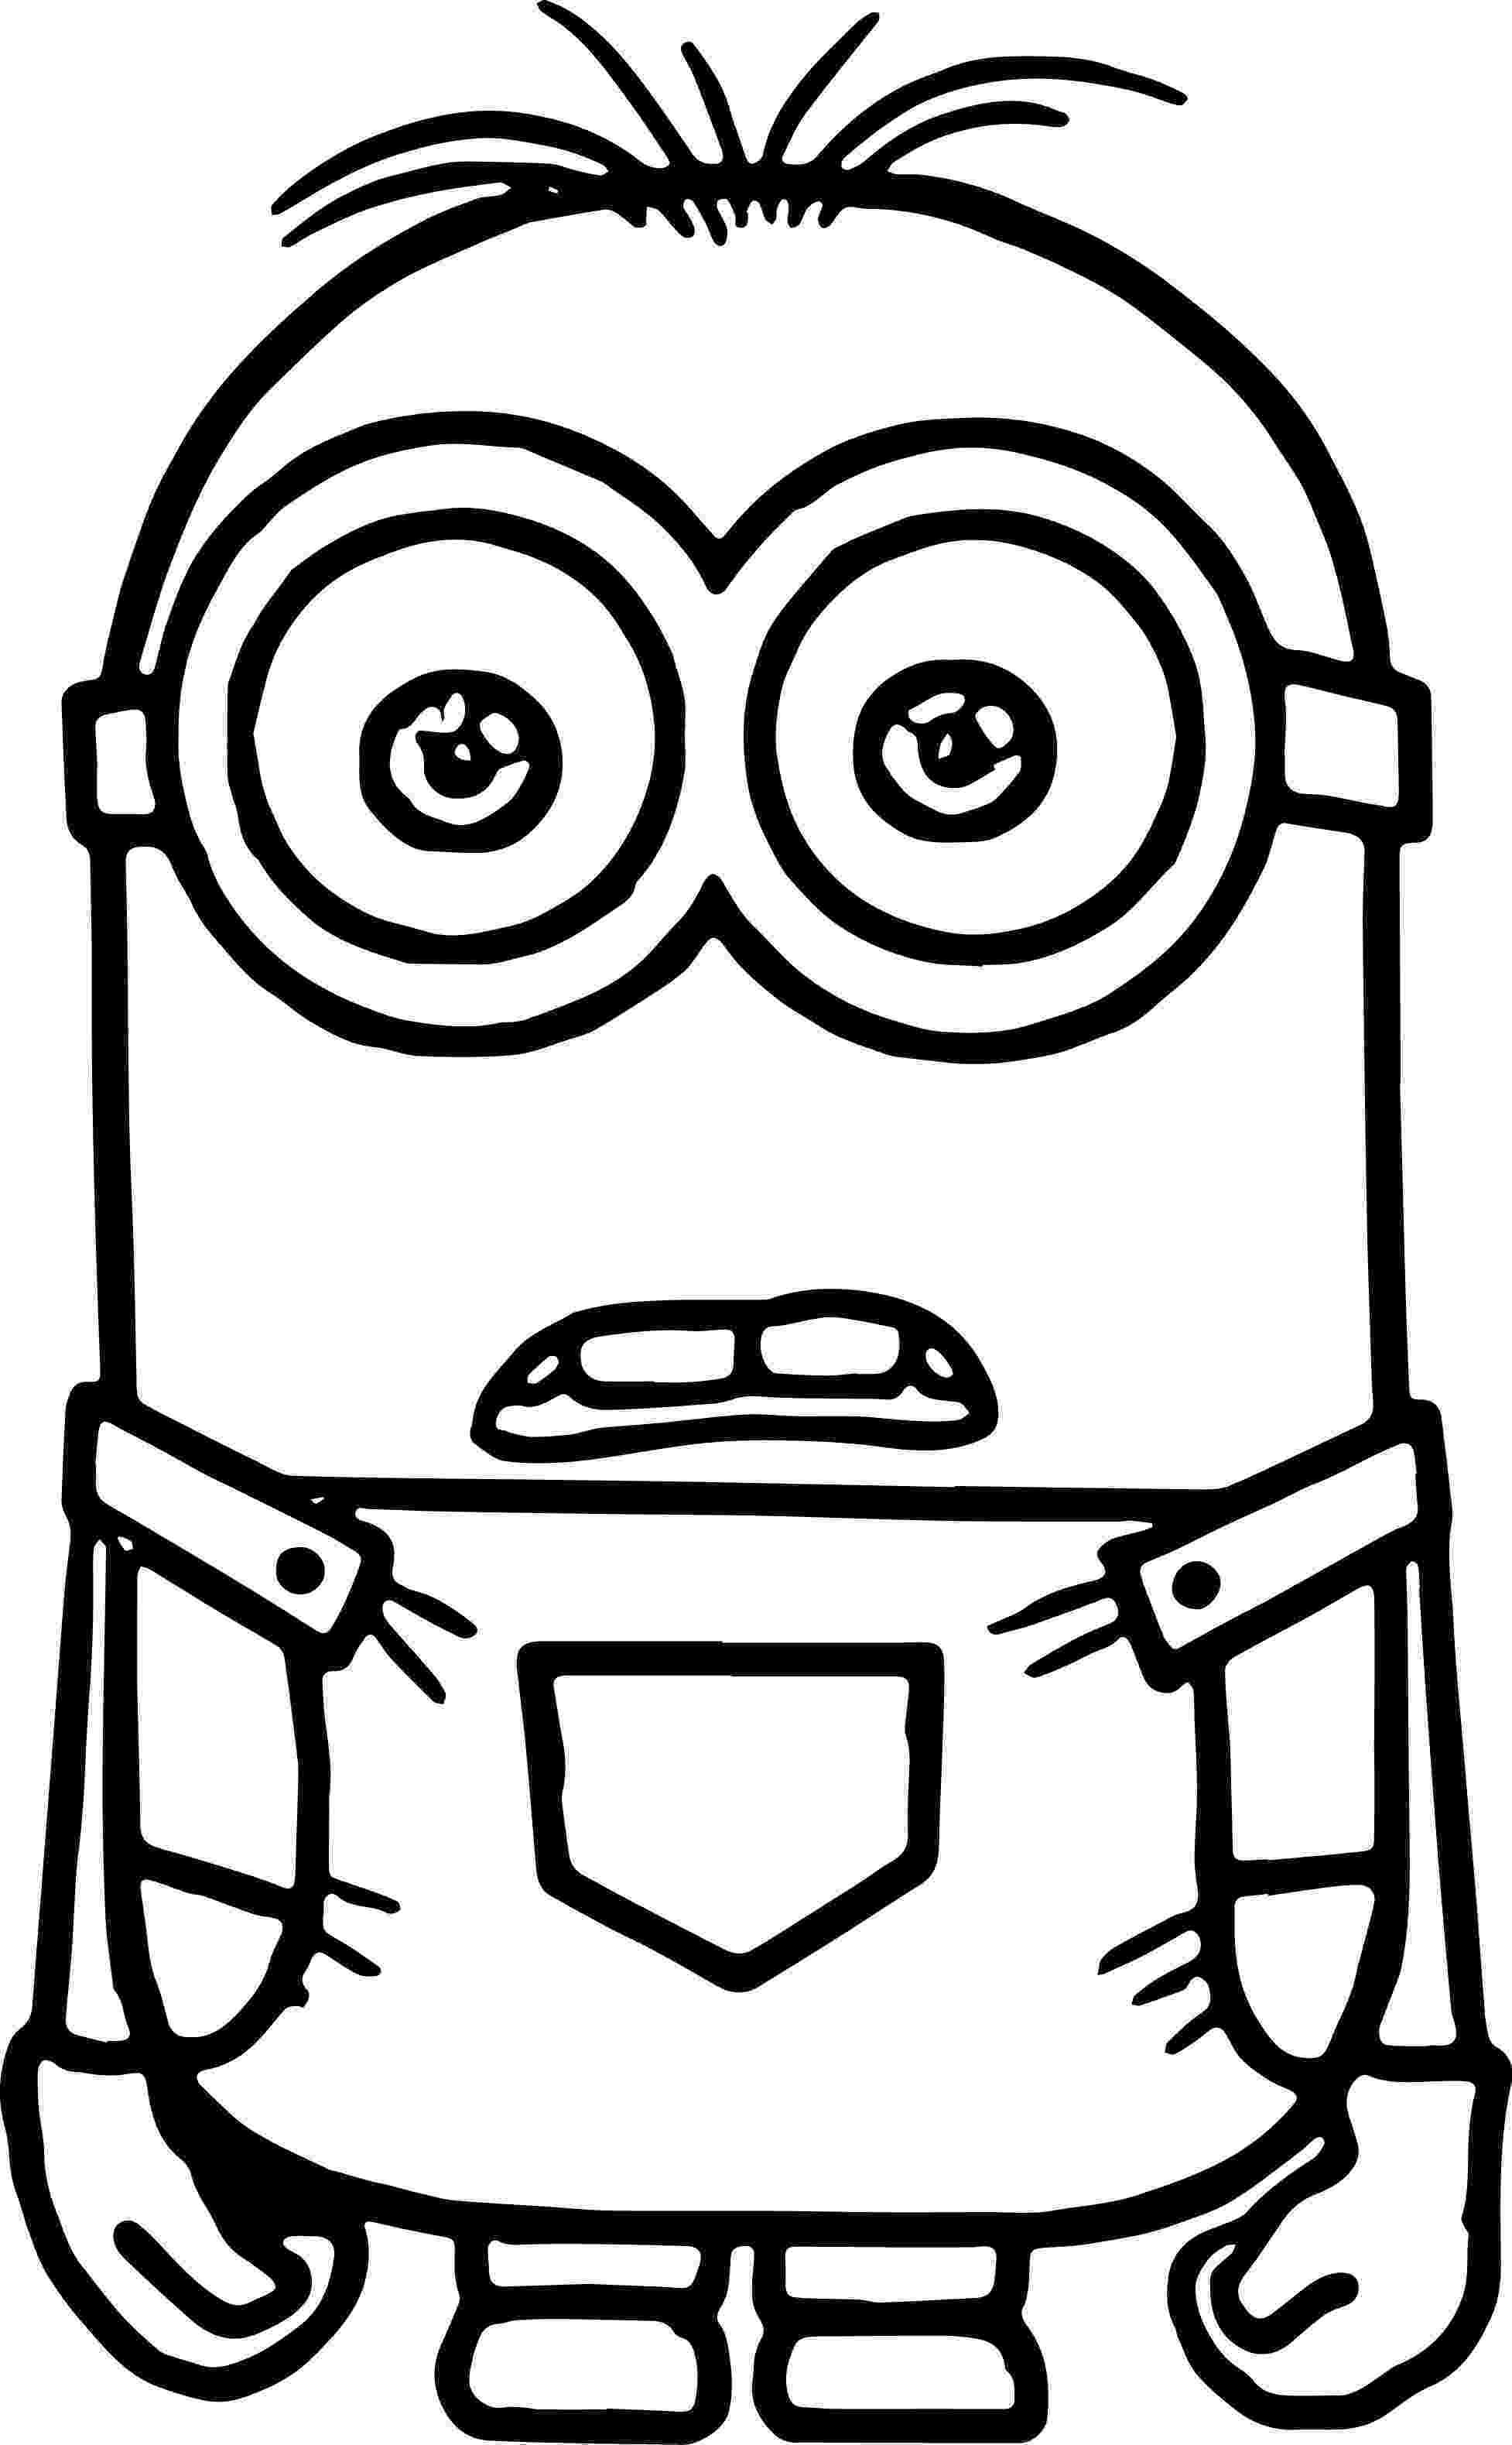 minions black and white minions coloring pages minion coloring pages disney black and white minions